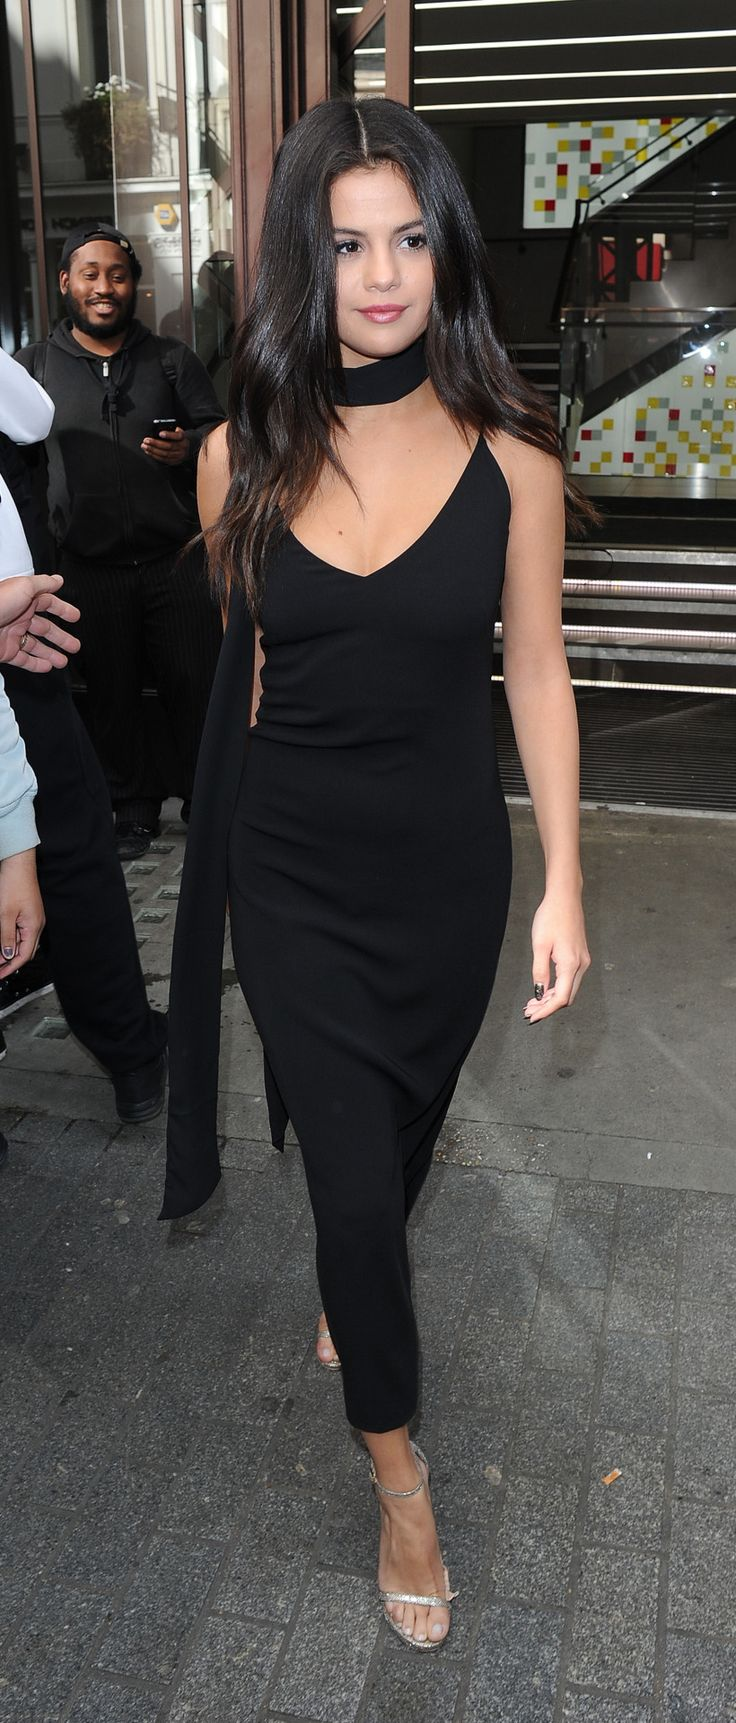 Selena leaves VEVO London Offices.